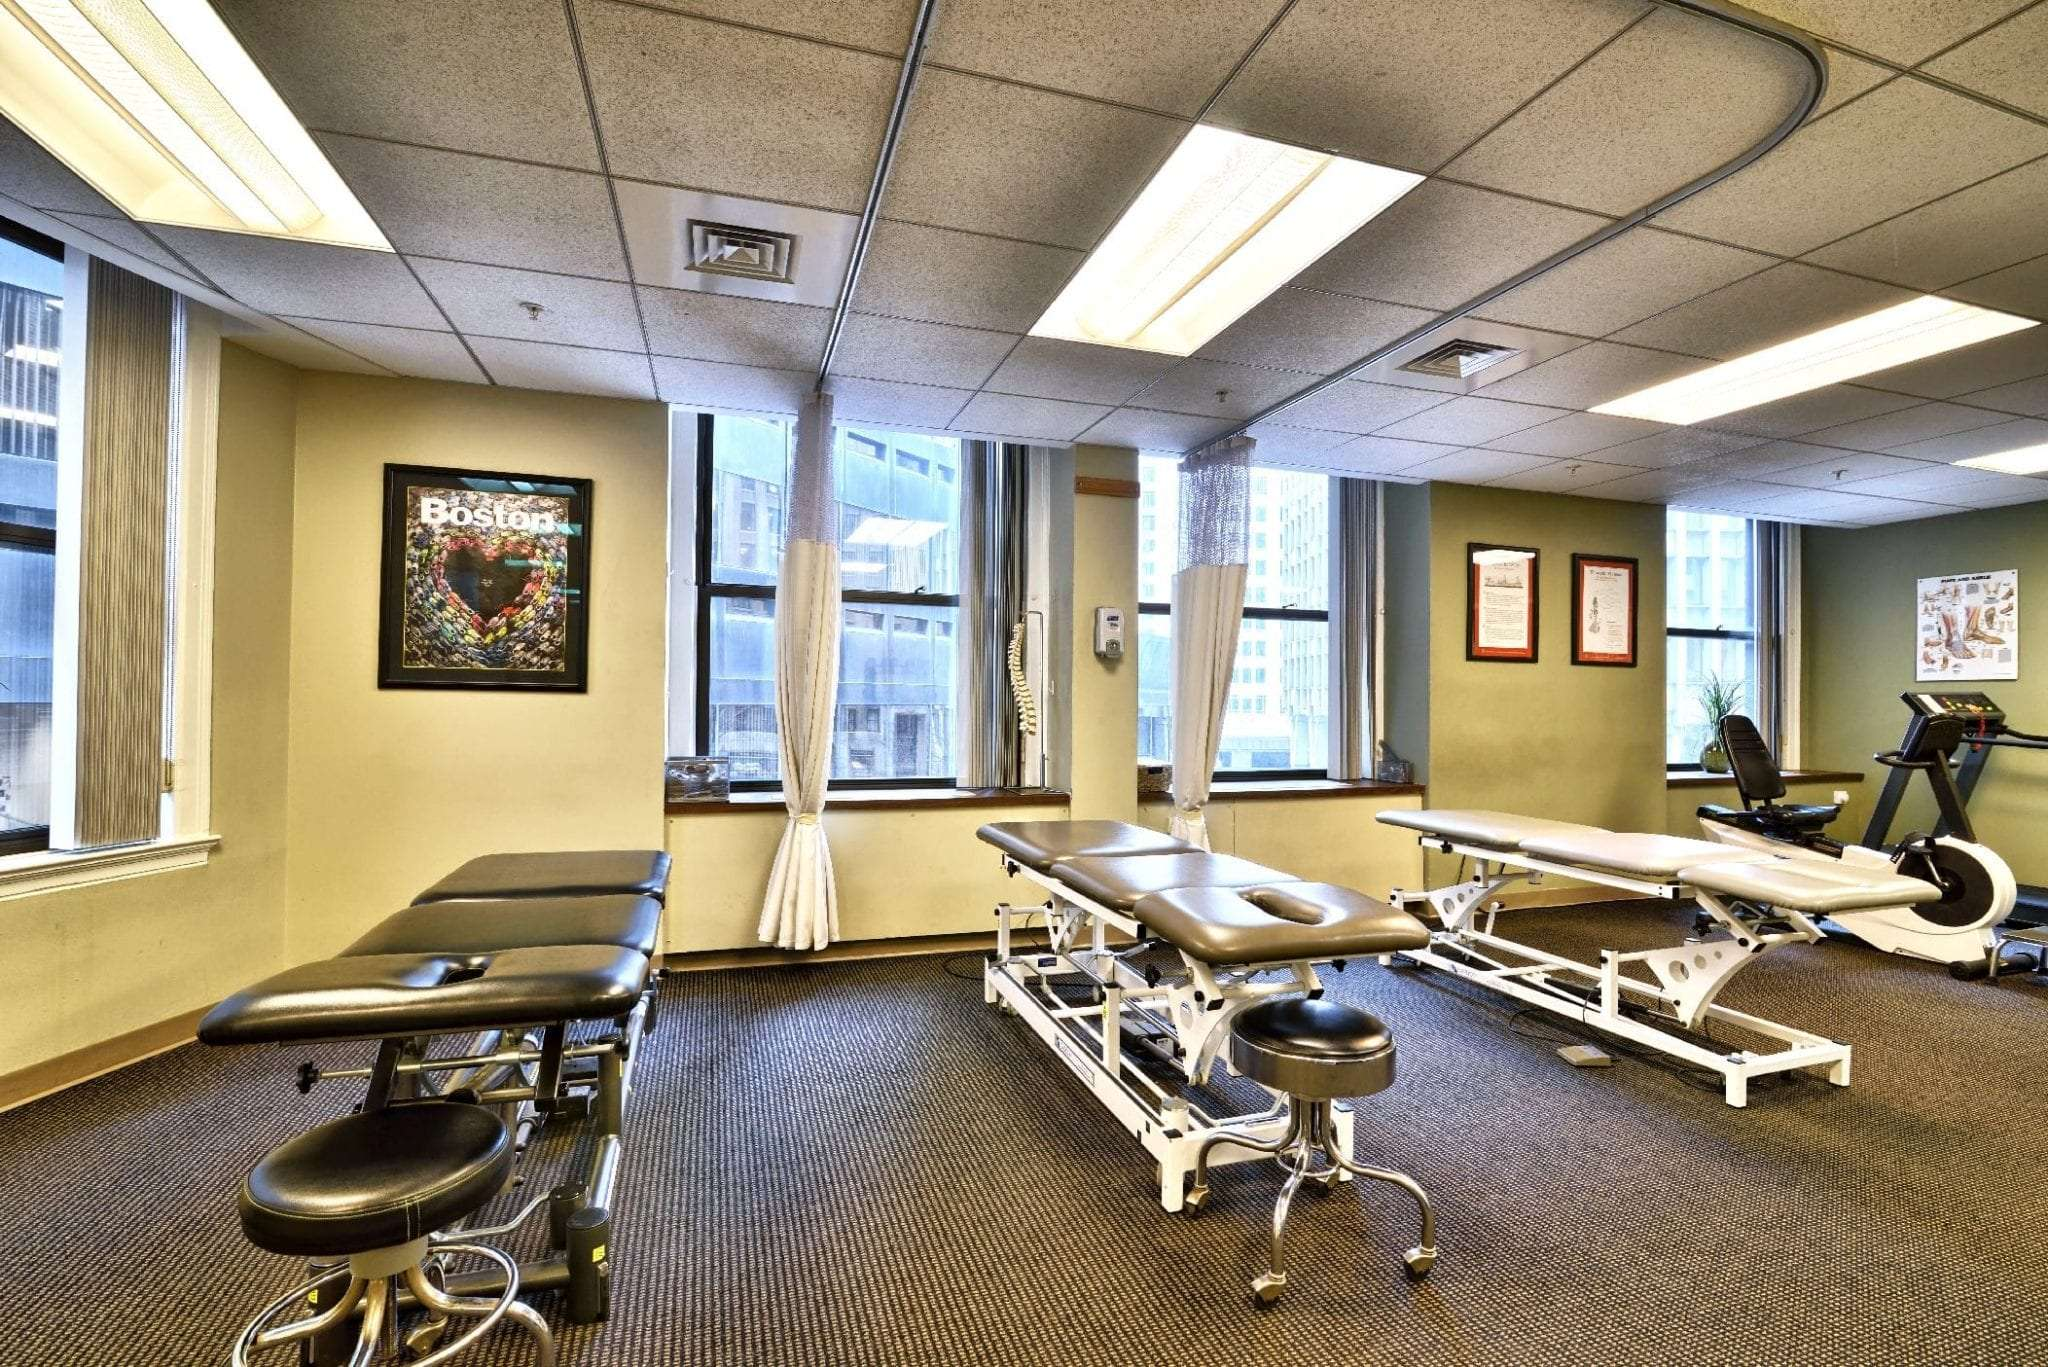 This image shows our clean stretch beds used at our physical therapy clinic in Boston, Massachusetts.